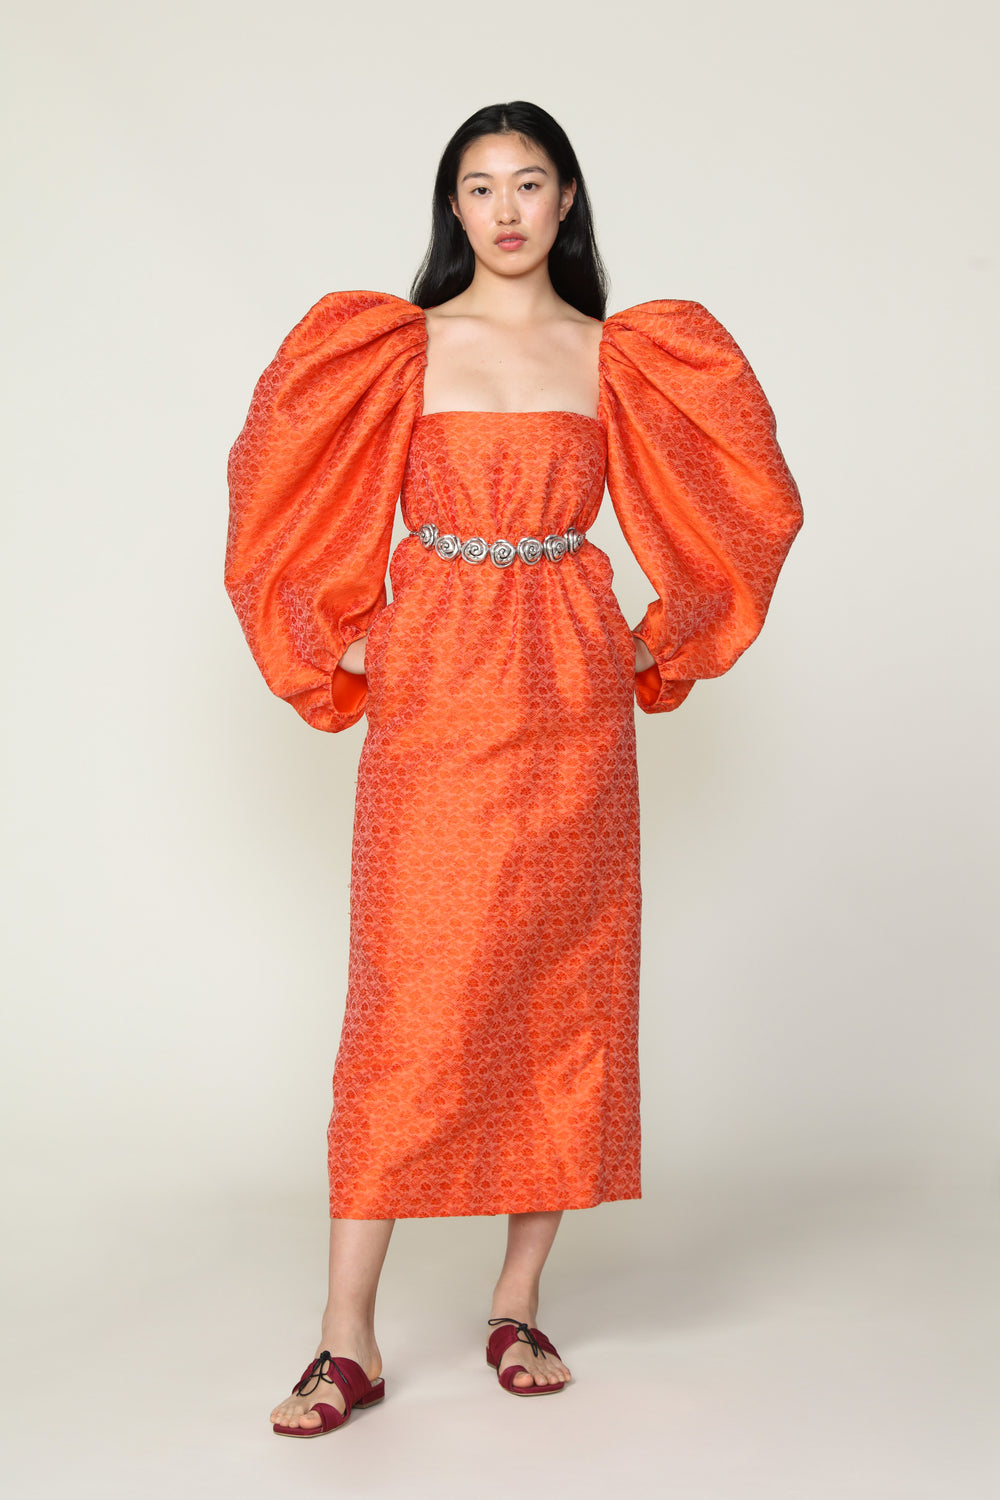 Madame Butterfly Dress